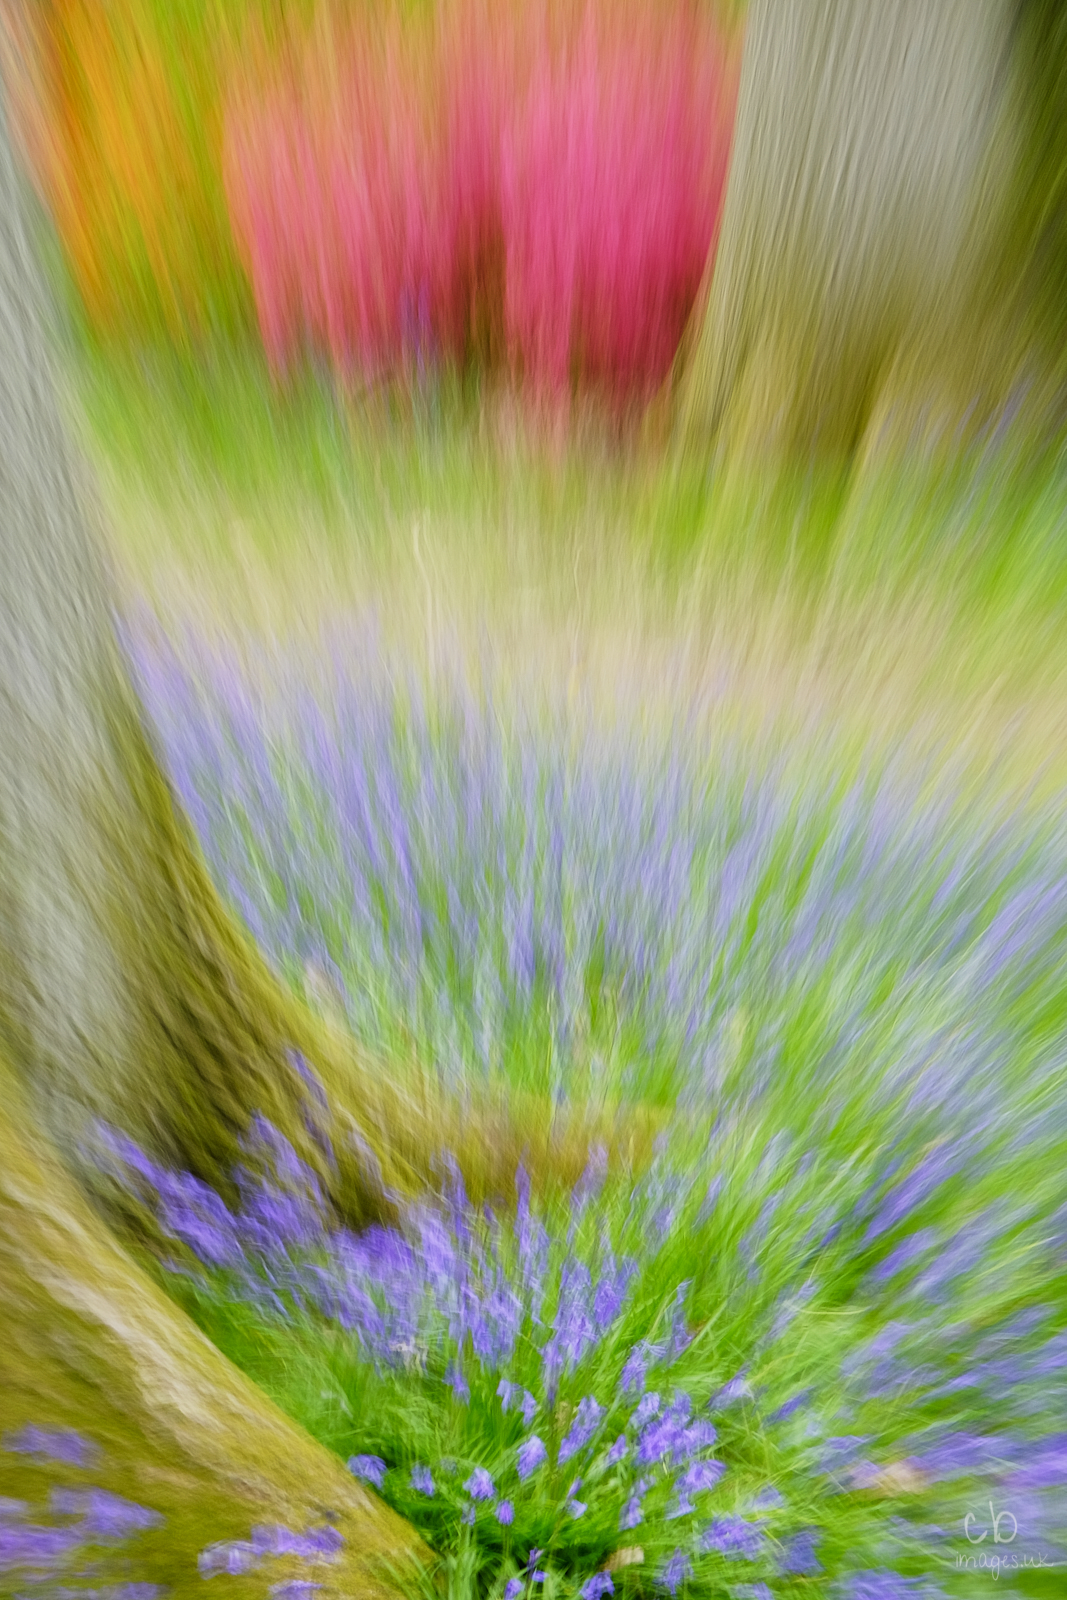 Blurred bluebells and pink azaleas at Westonbirt